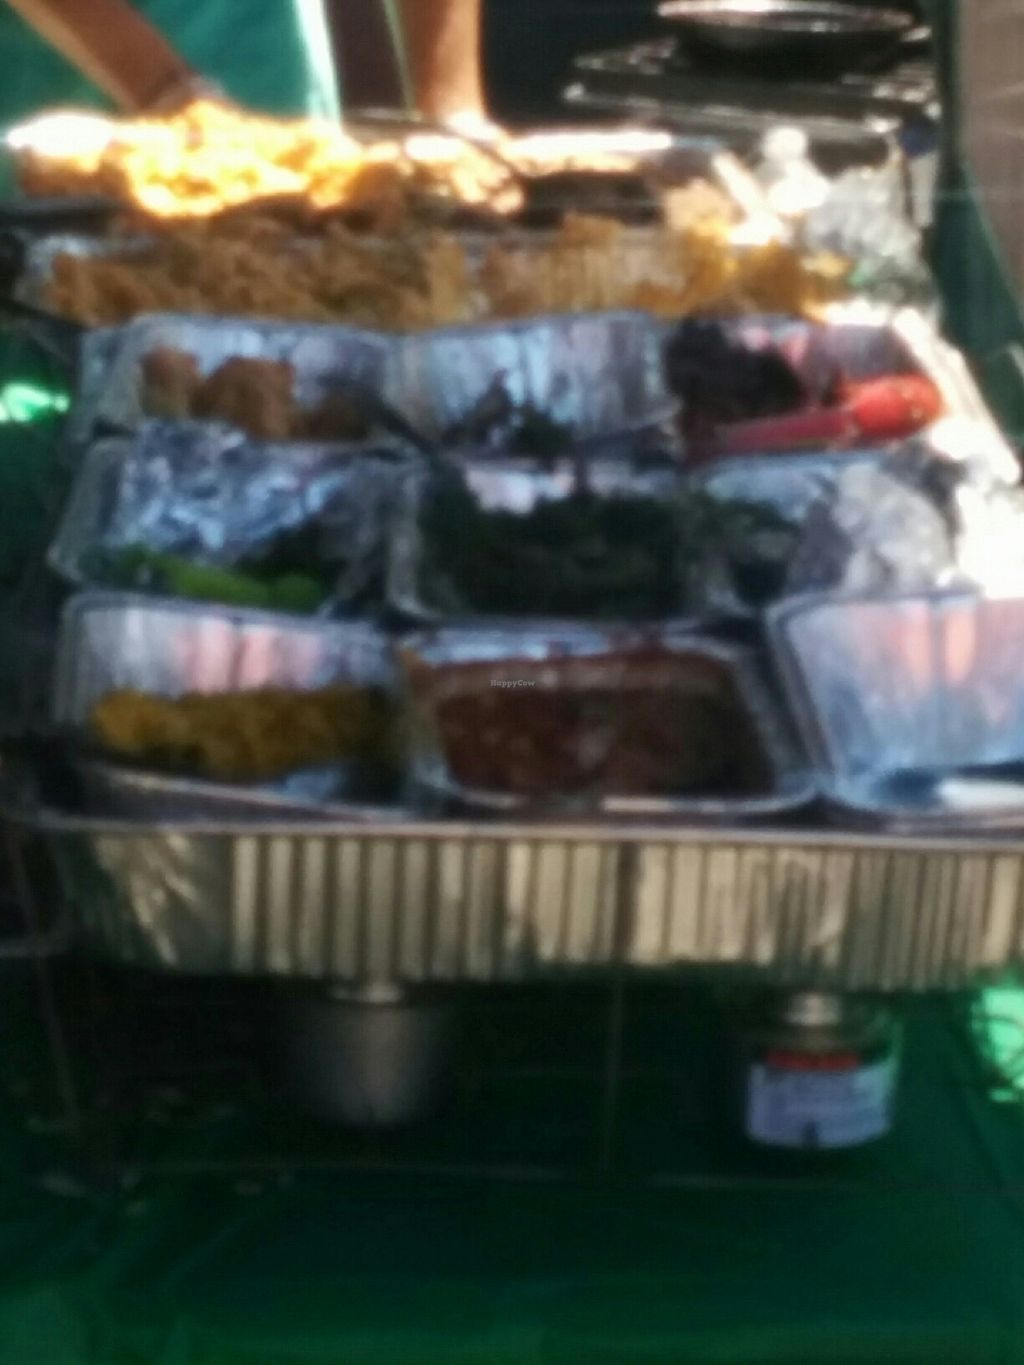 """Photo of Southern Fried Vegan BBQ  by <a href=""""/members/profile/MizzB"""">MizzB</a> <br/>prep area at Sonoma County VegFest 8/12/17 <br/> August 15, 2017  - <a href='/contact/abuse/image/29946/292847'>Report</a>"""